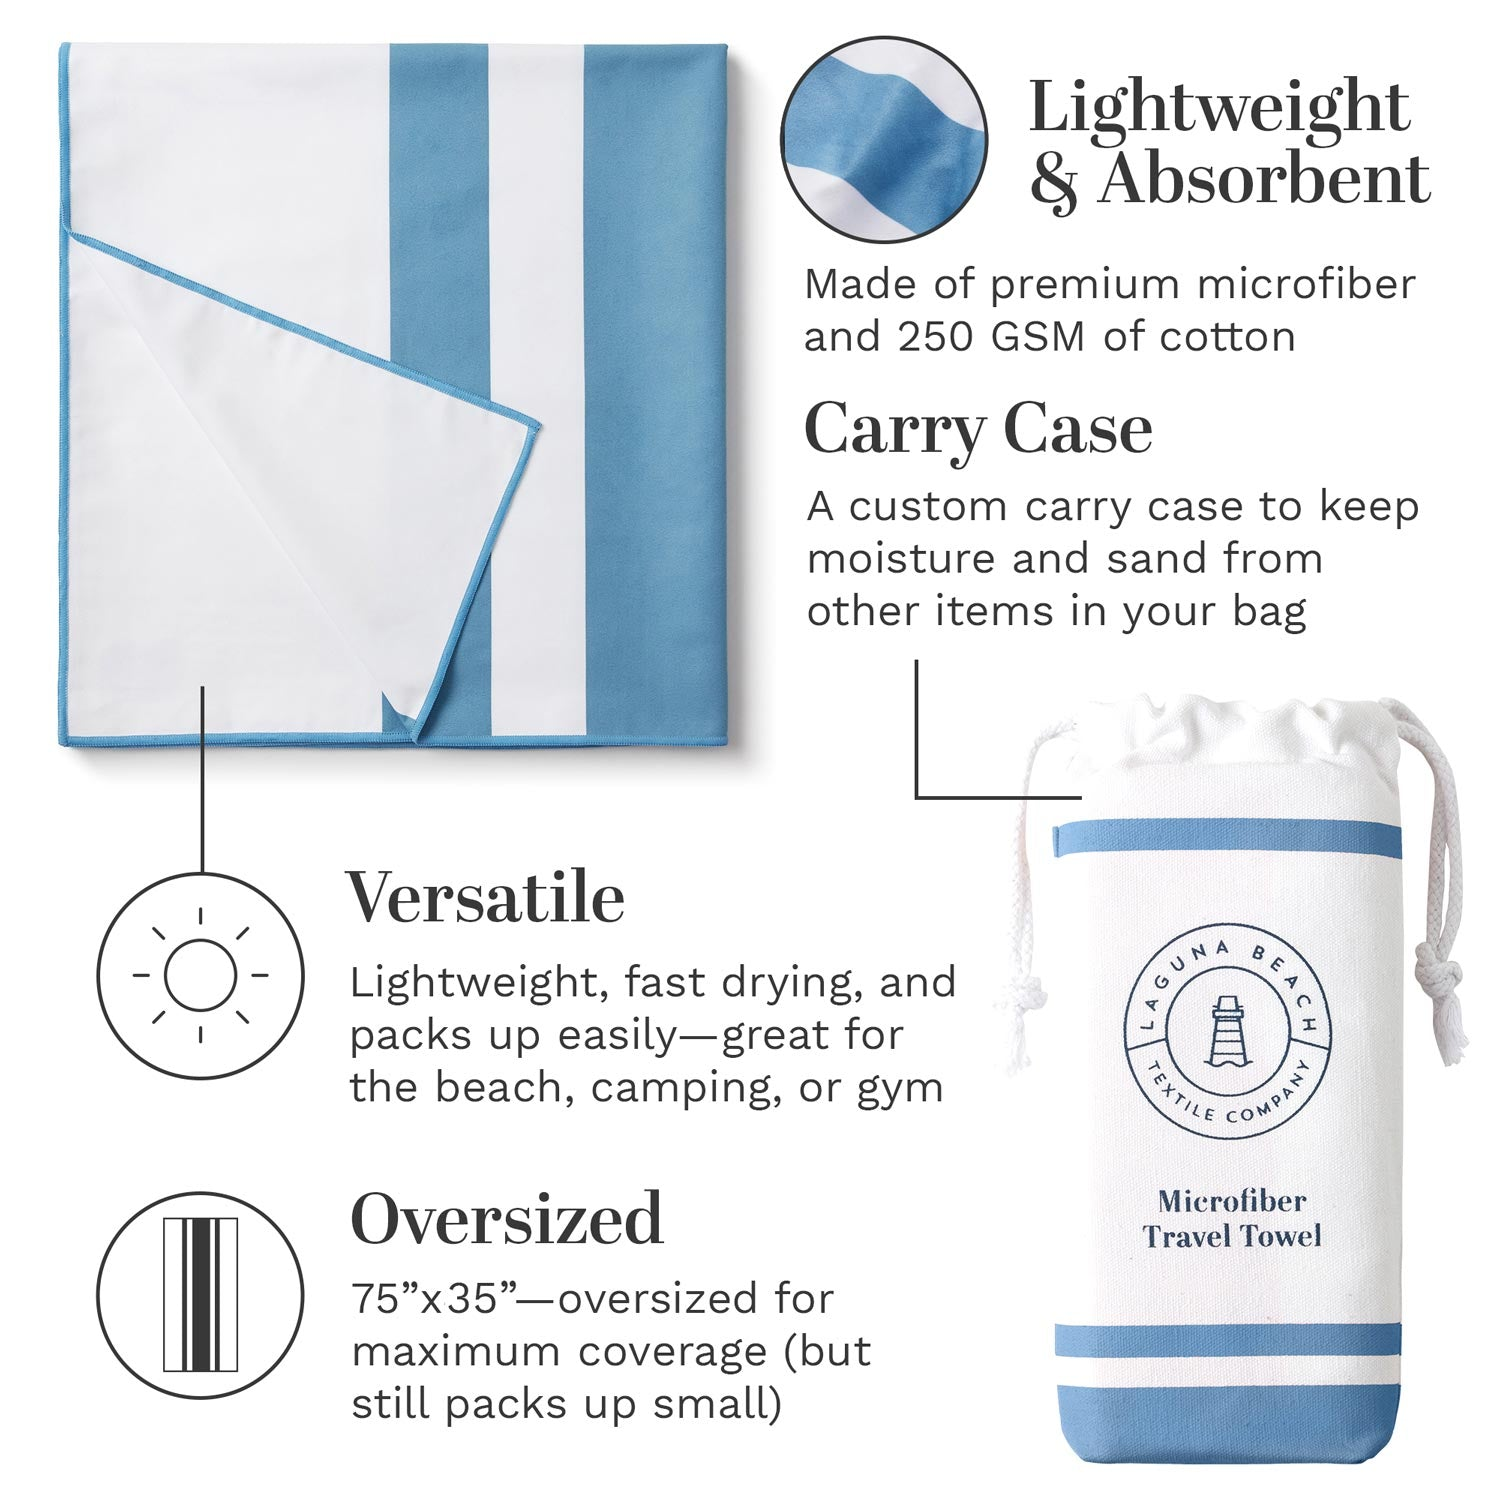 Infographic for blue microfiber beach towel highlighting how it is oversized, lightweight, and absorbent.